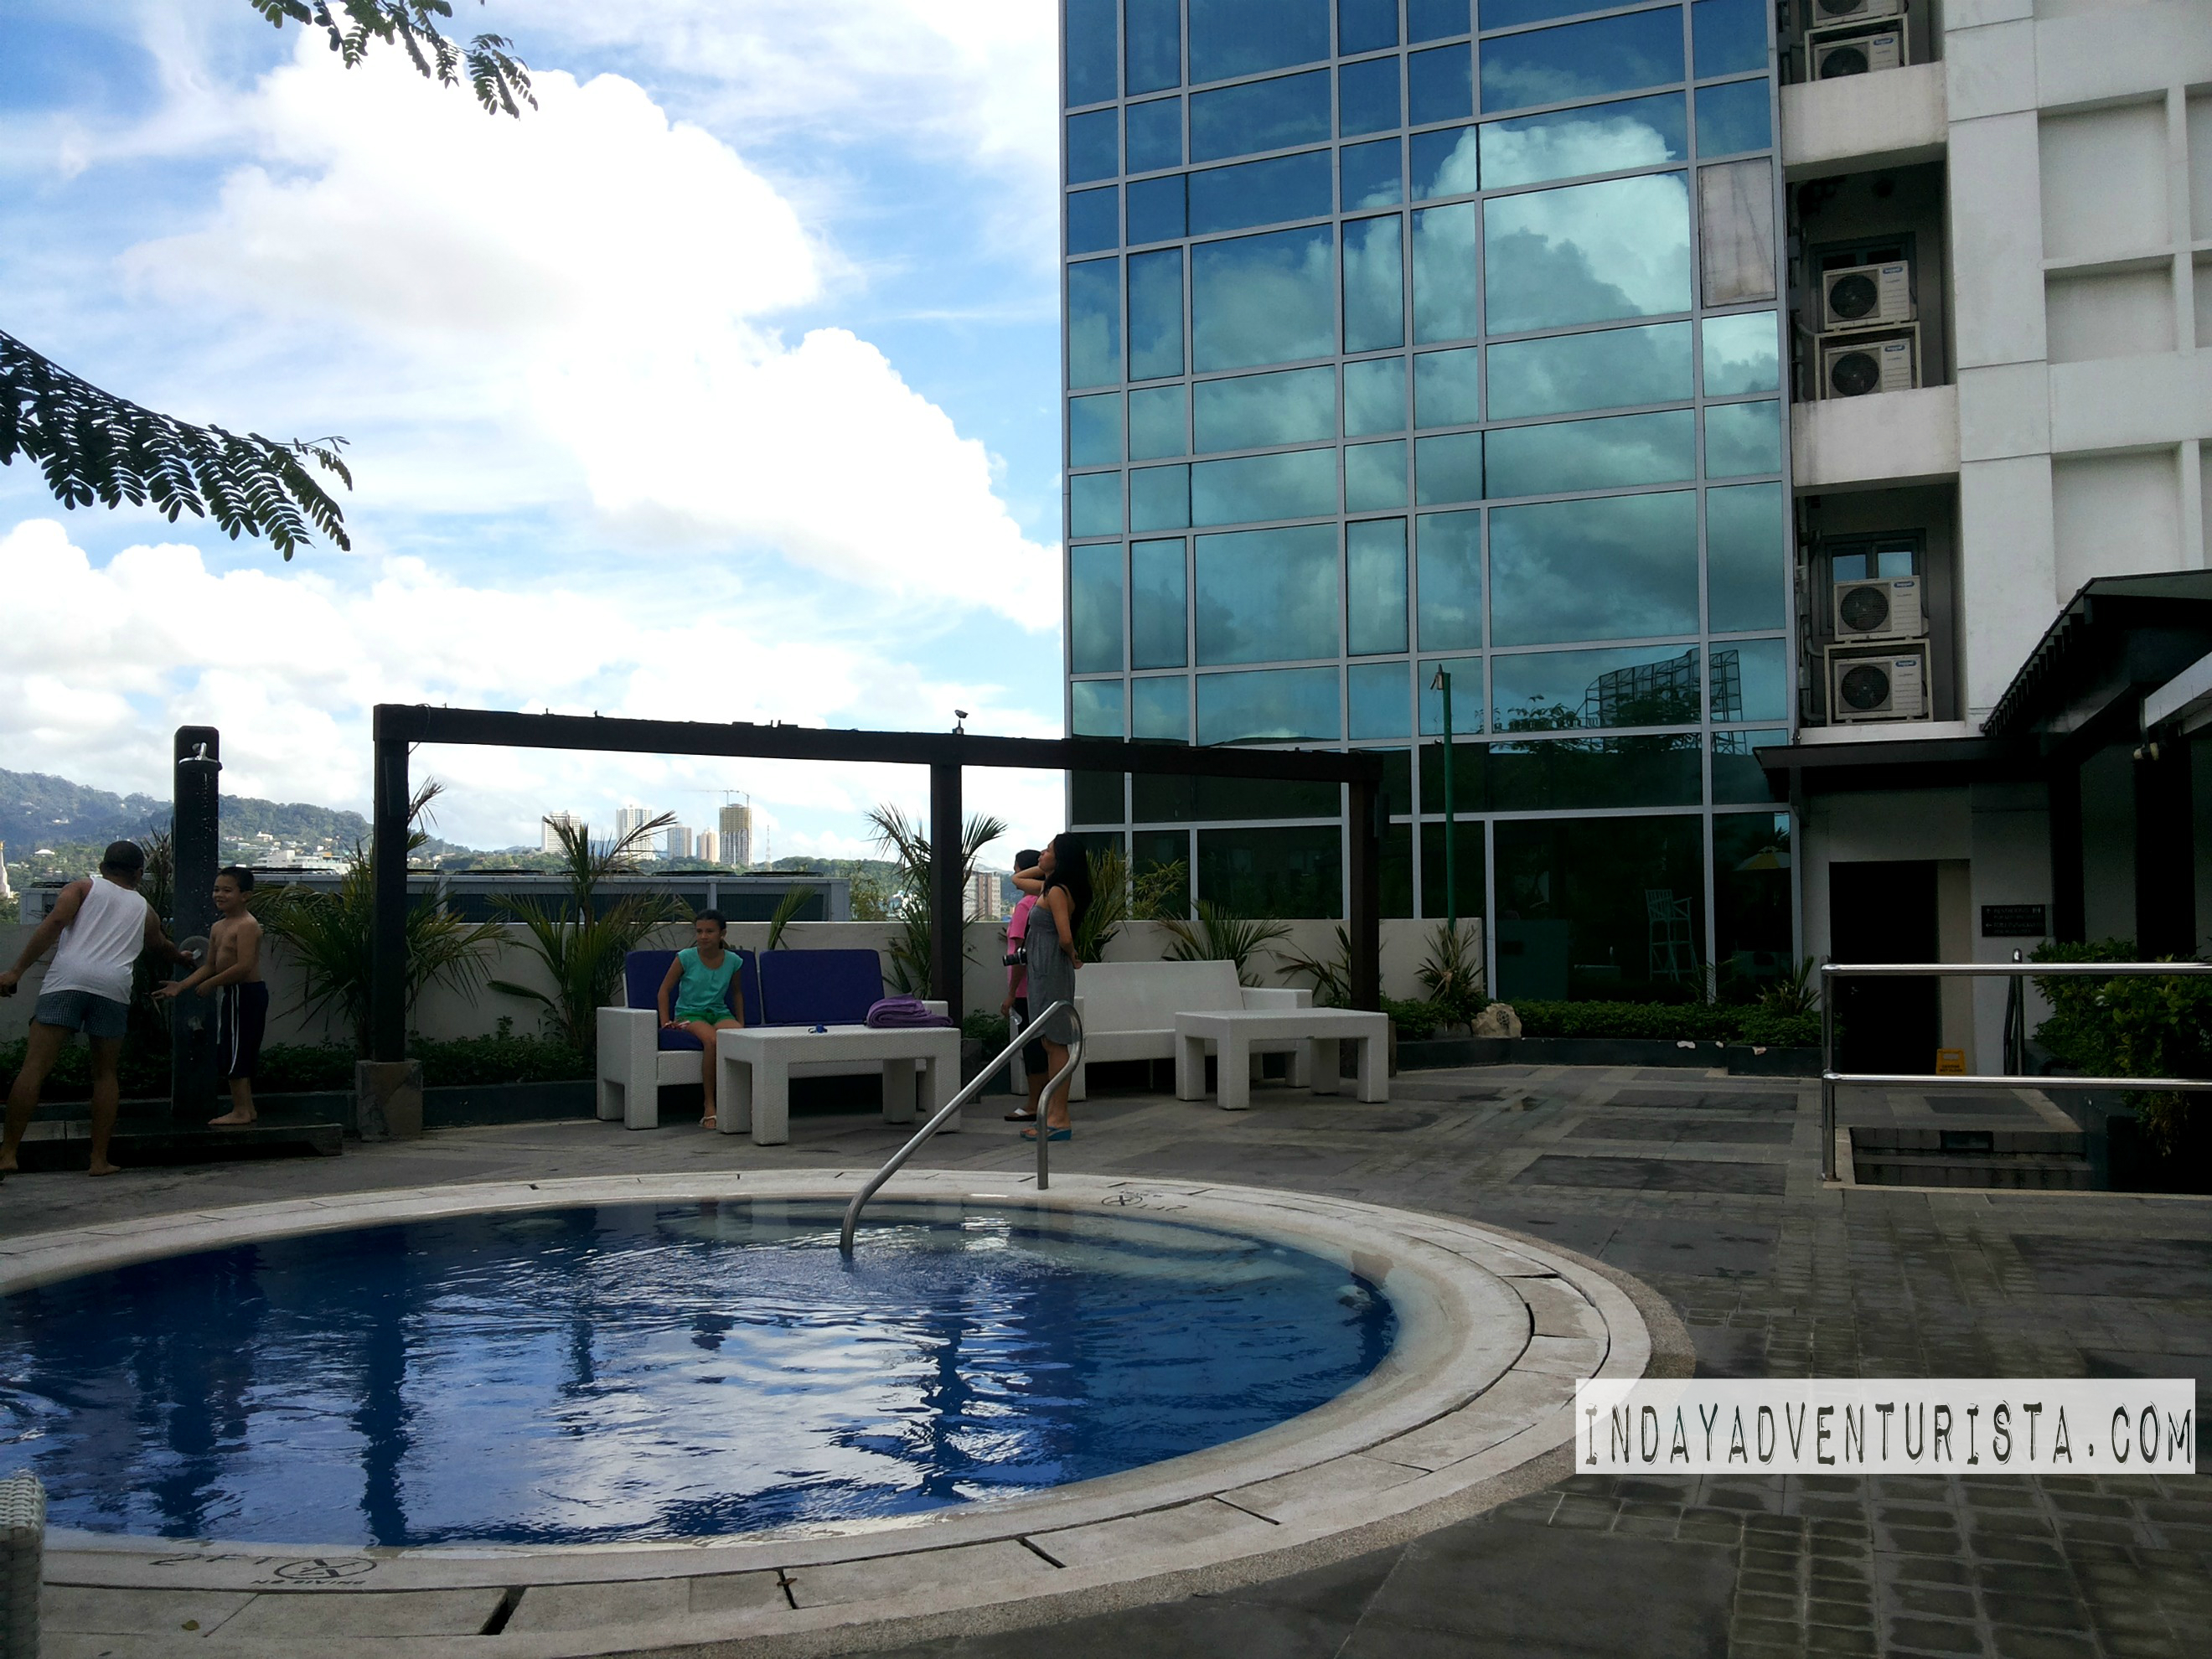 20140518 072956 inday adventurista for Cheap hotels in cebu city with swimming pool